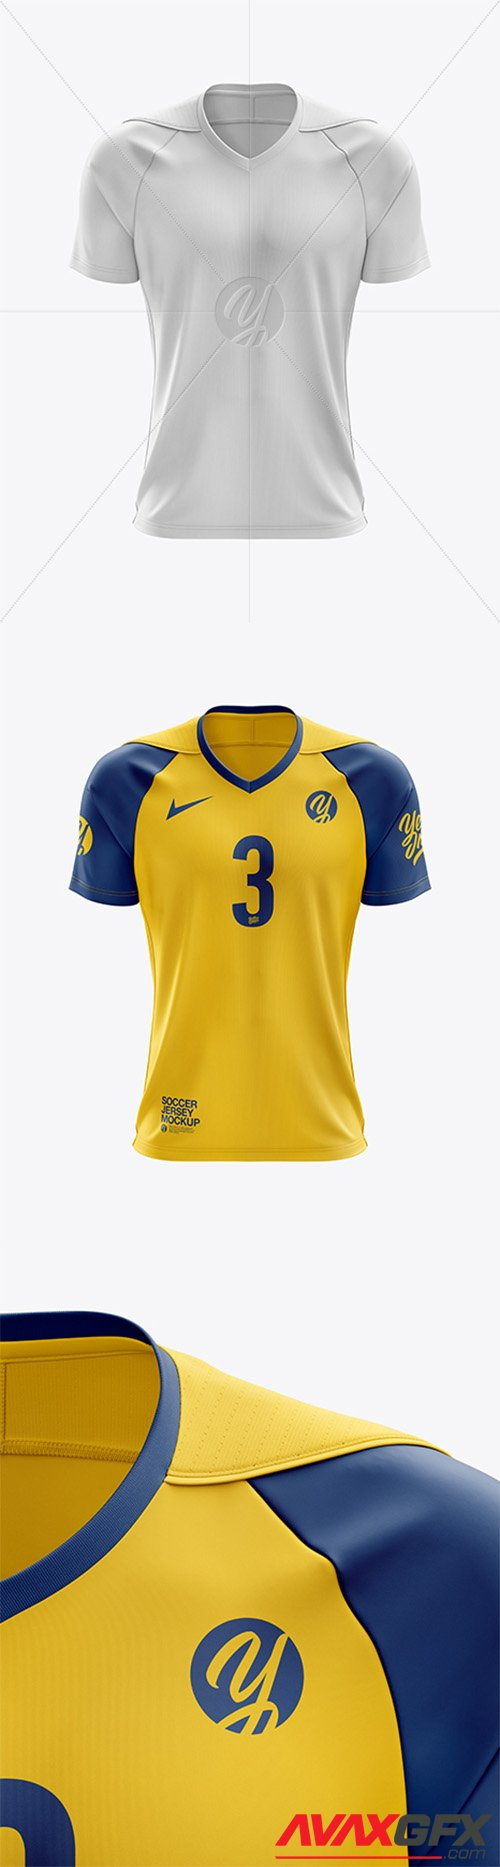 Men's Soccer Jersey mockup (Front View) 39871